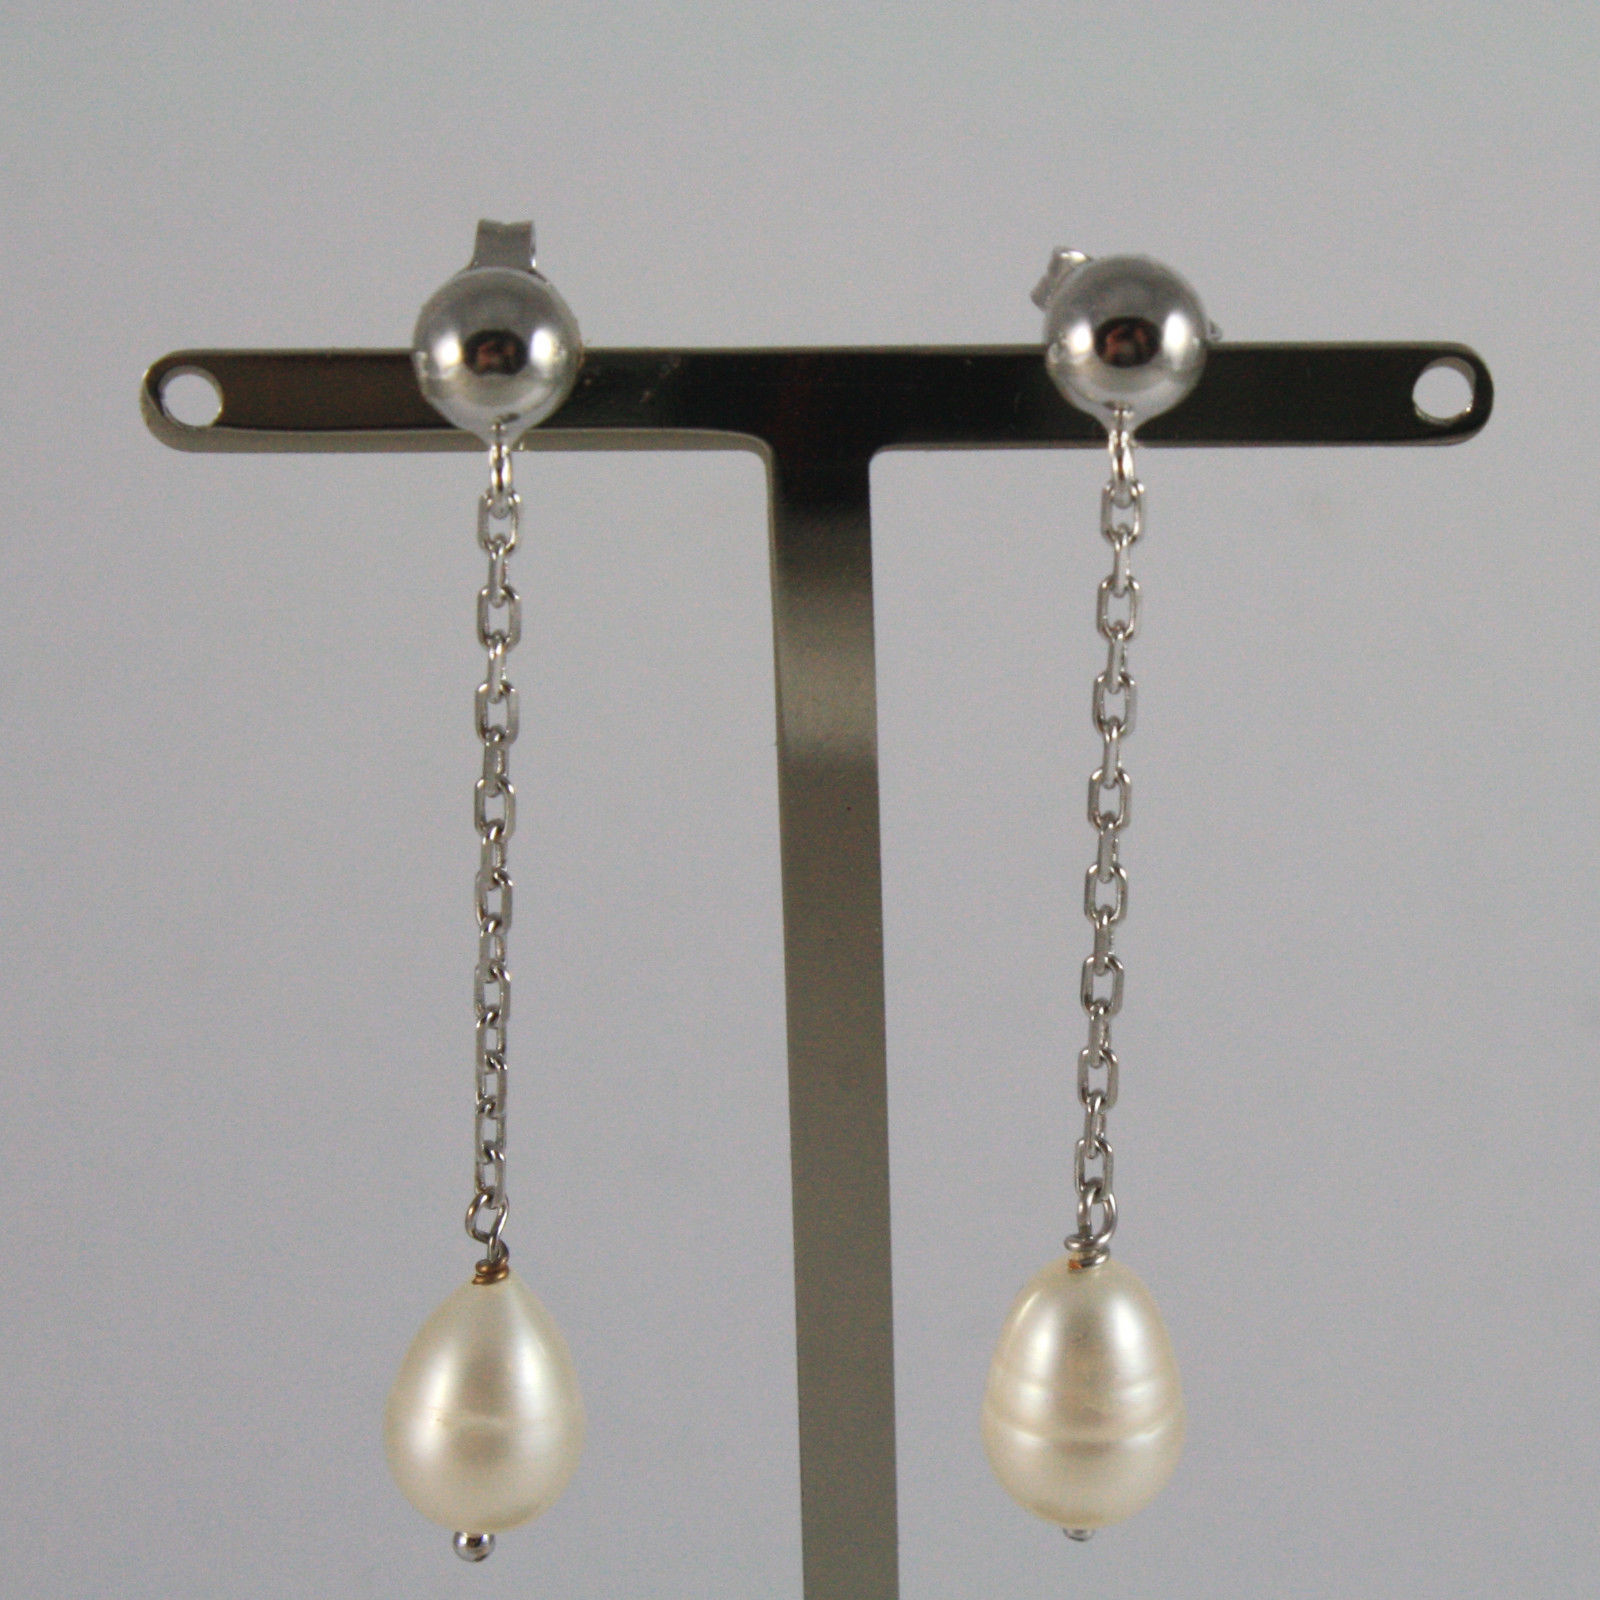 18K WHITE GOLD PENDANT EARRINGS, WITH WHITE PEARLS, LENGTH 2,05 IN MADE IN ITALY